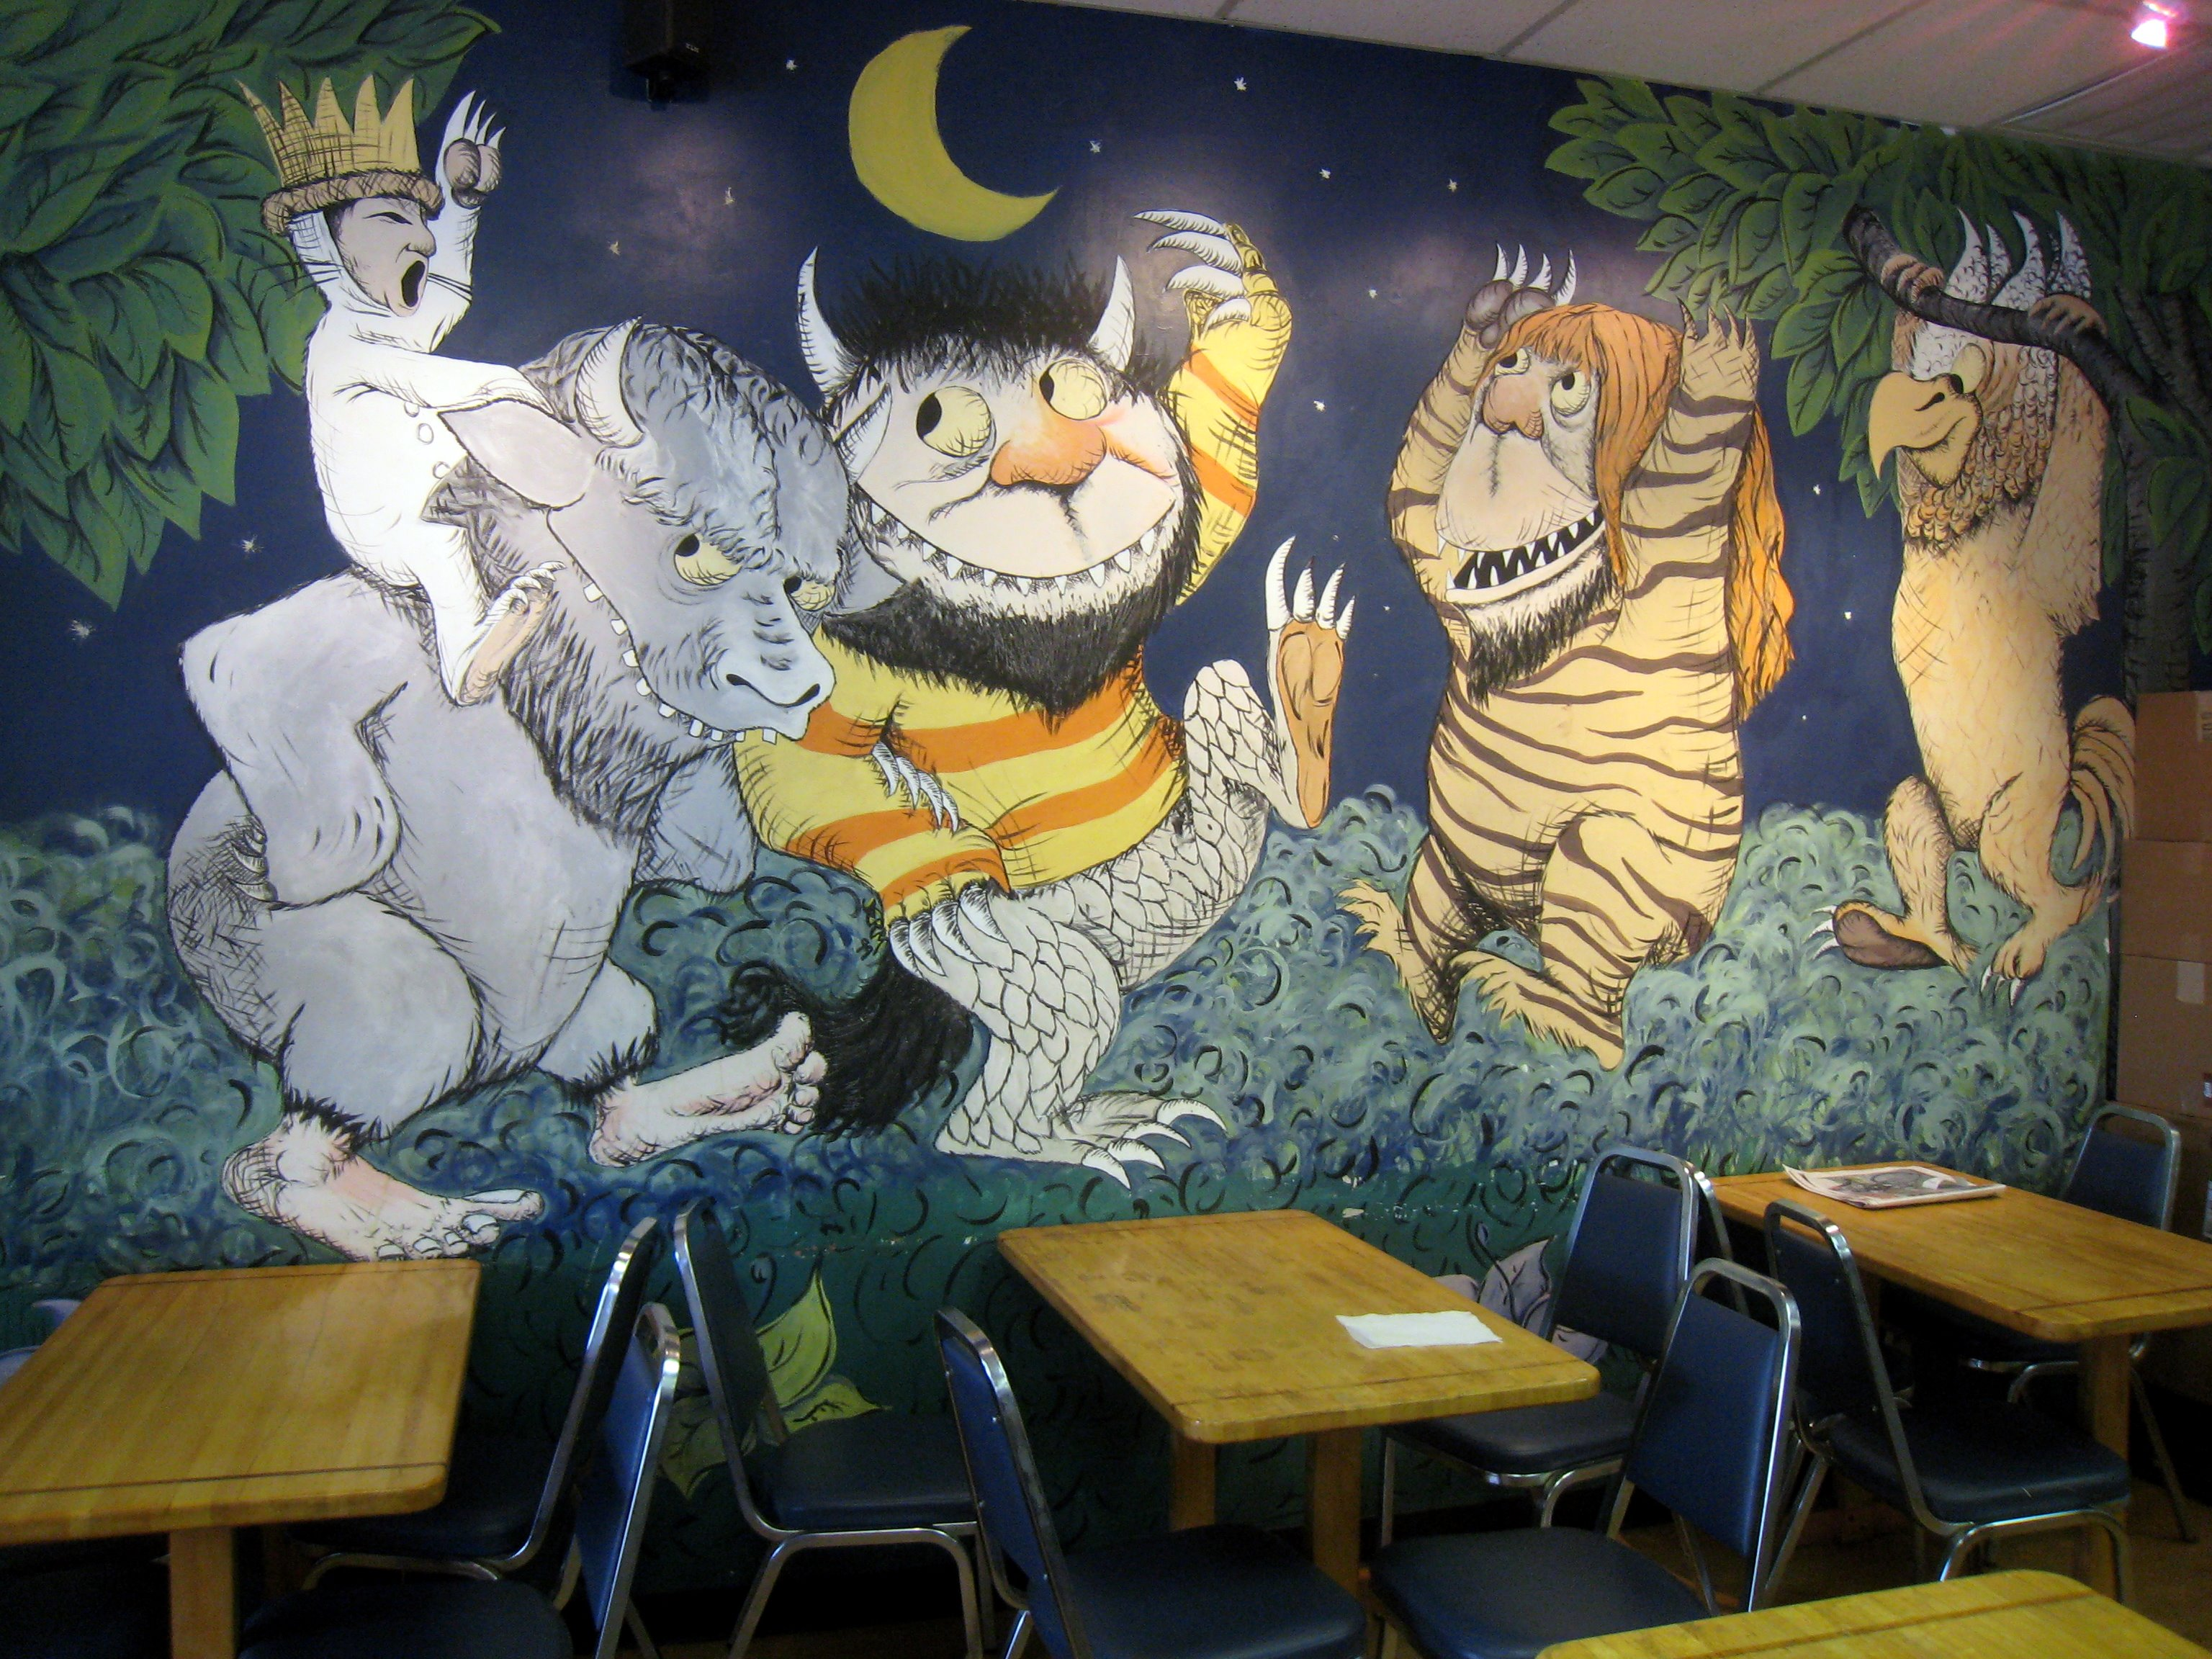 FileWhere the Wild Things Are Mural in Austin TXjpg Wikimedia